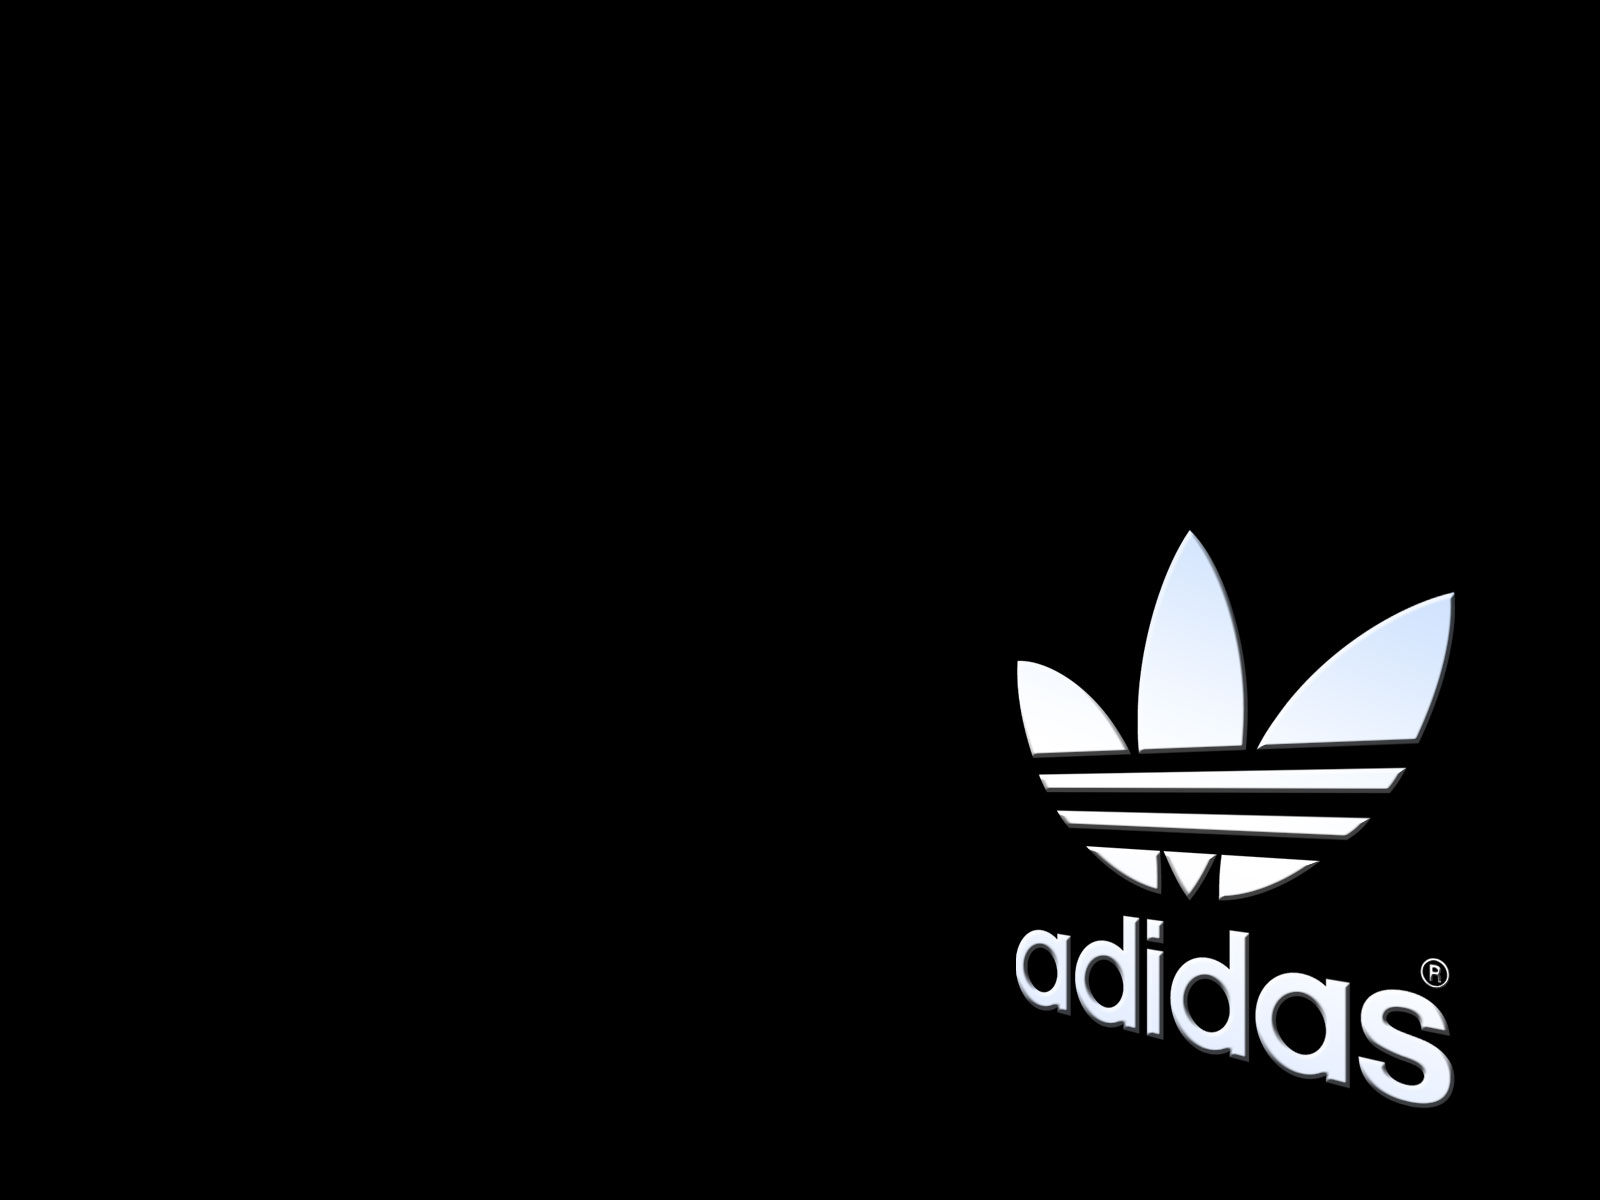 Adidas logo wallpapers and images   wallpapers pictures 1600x1200